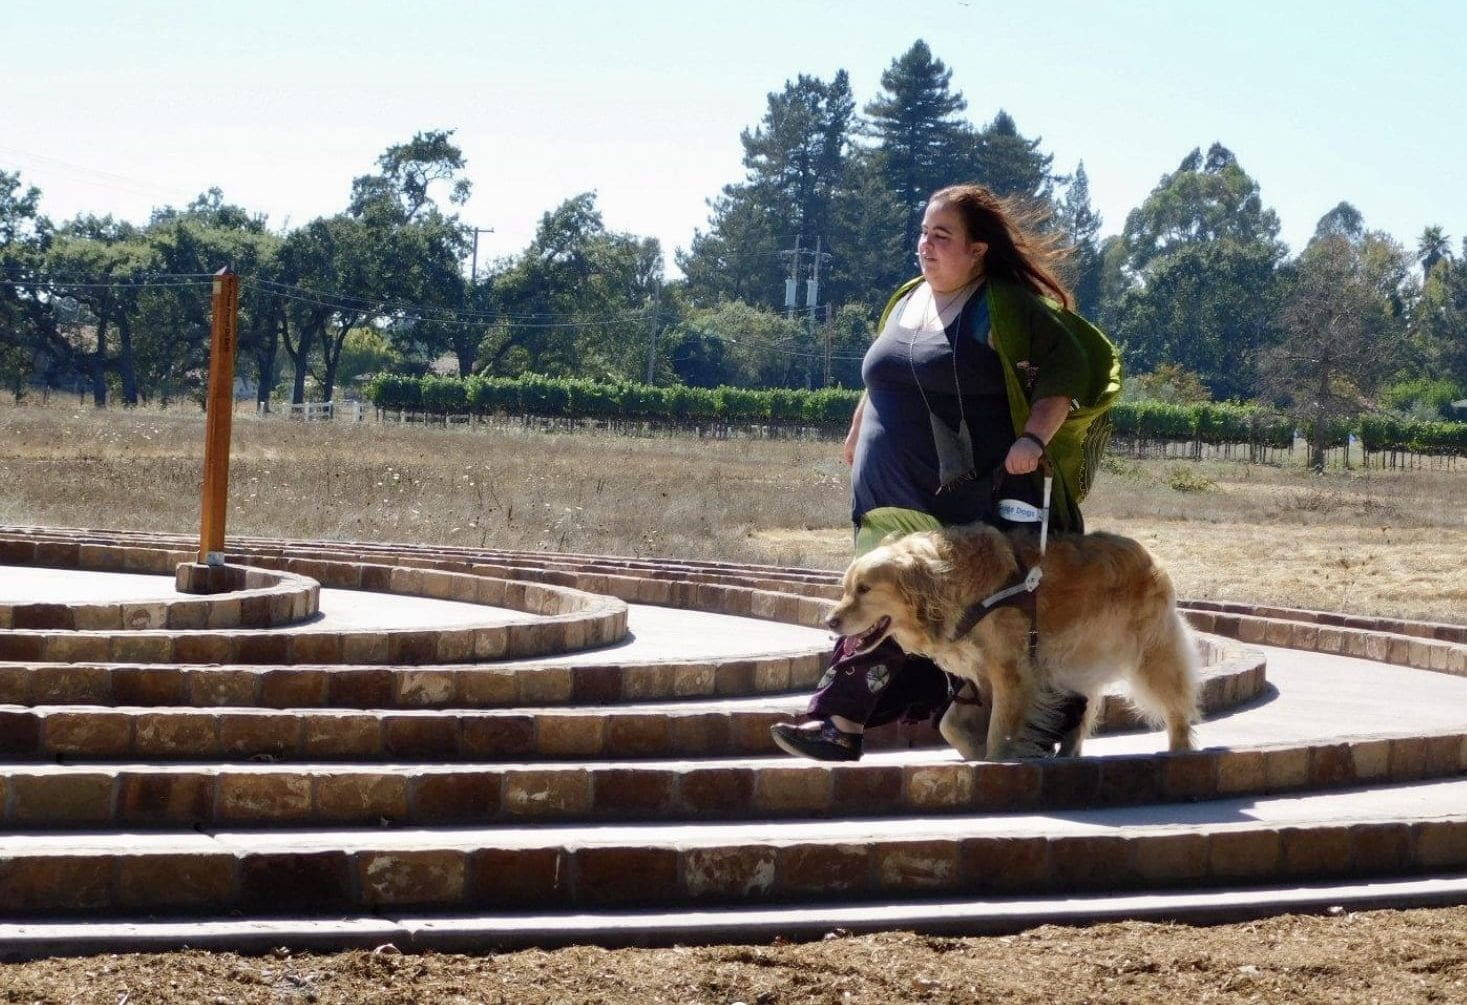 Maia walking through a stone labyrinth outside with her guide dog